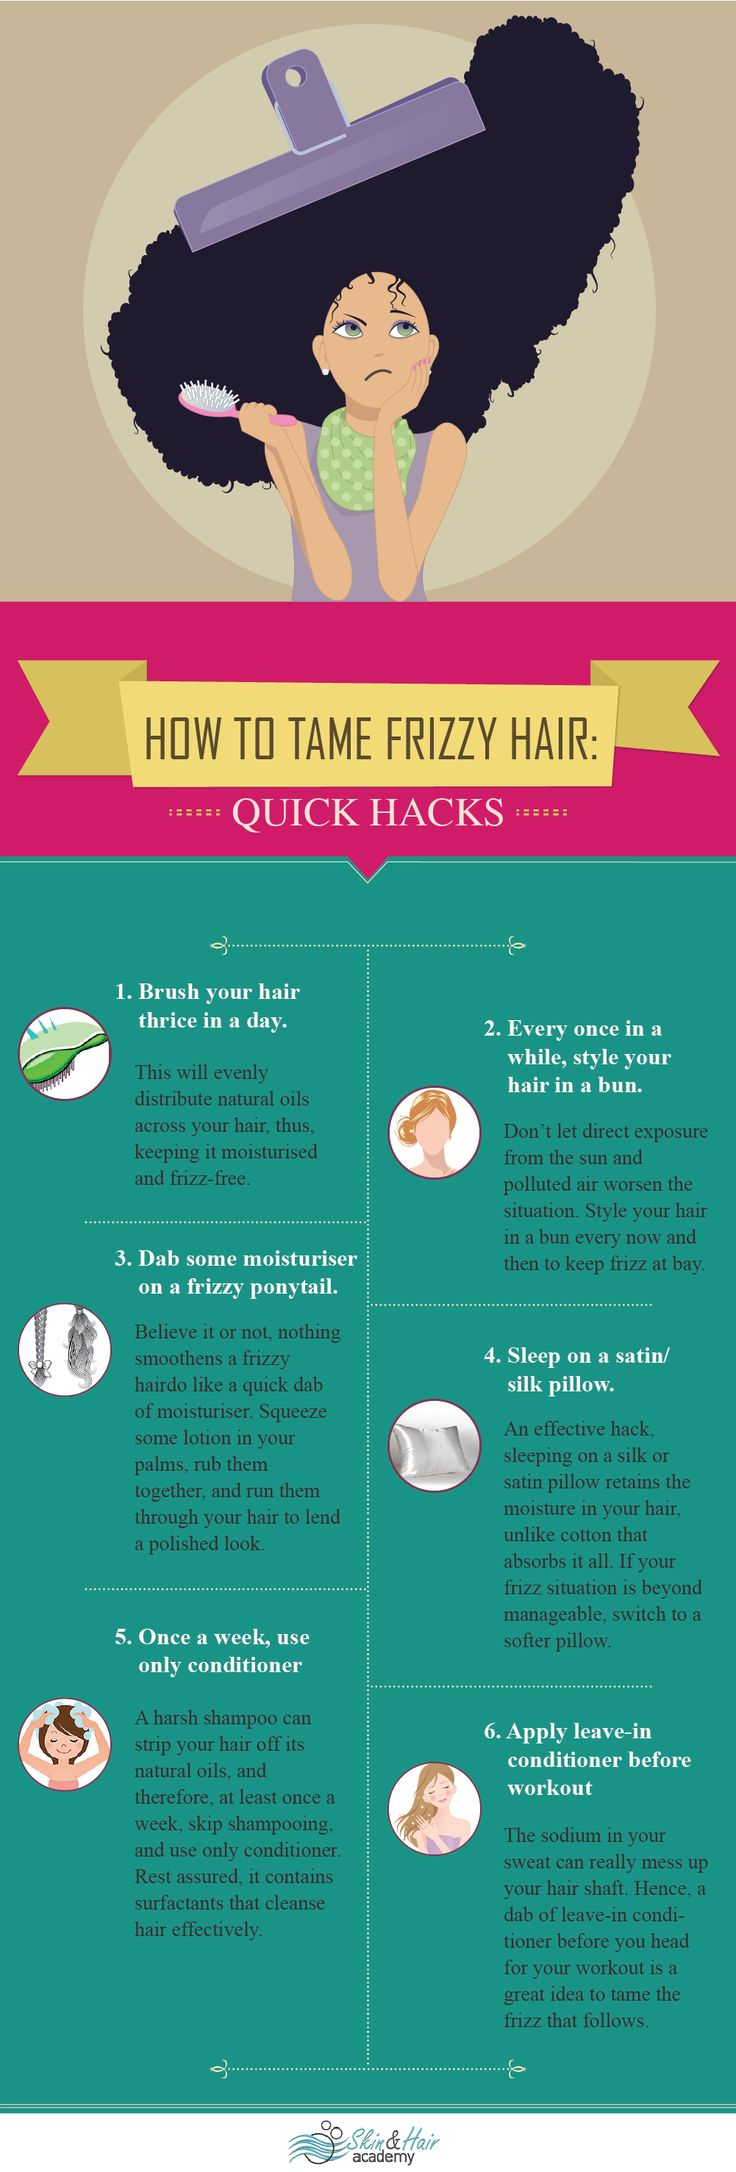 best frizzy hair images on pinterest hair care beauty tips and